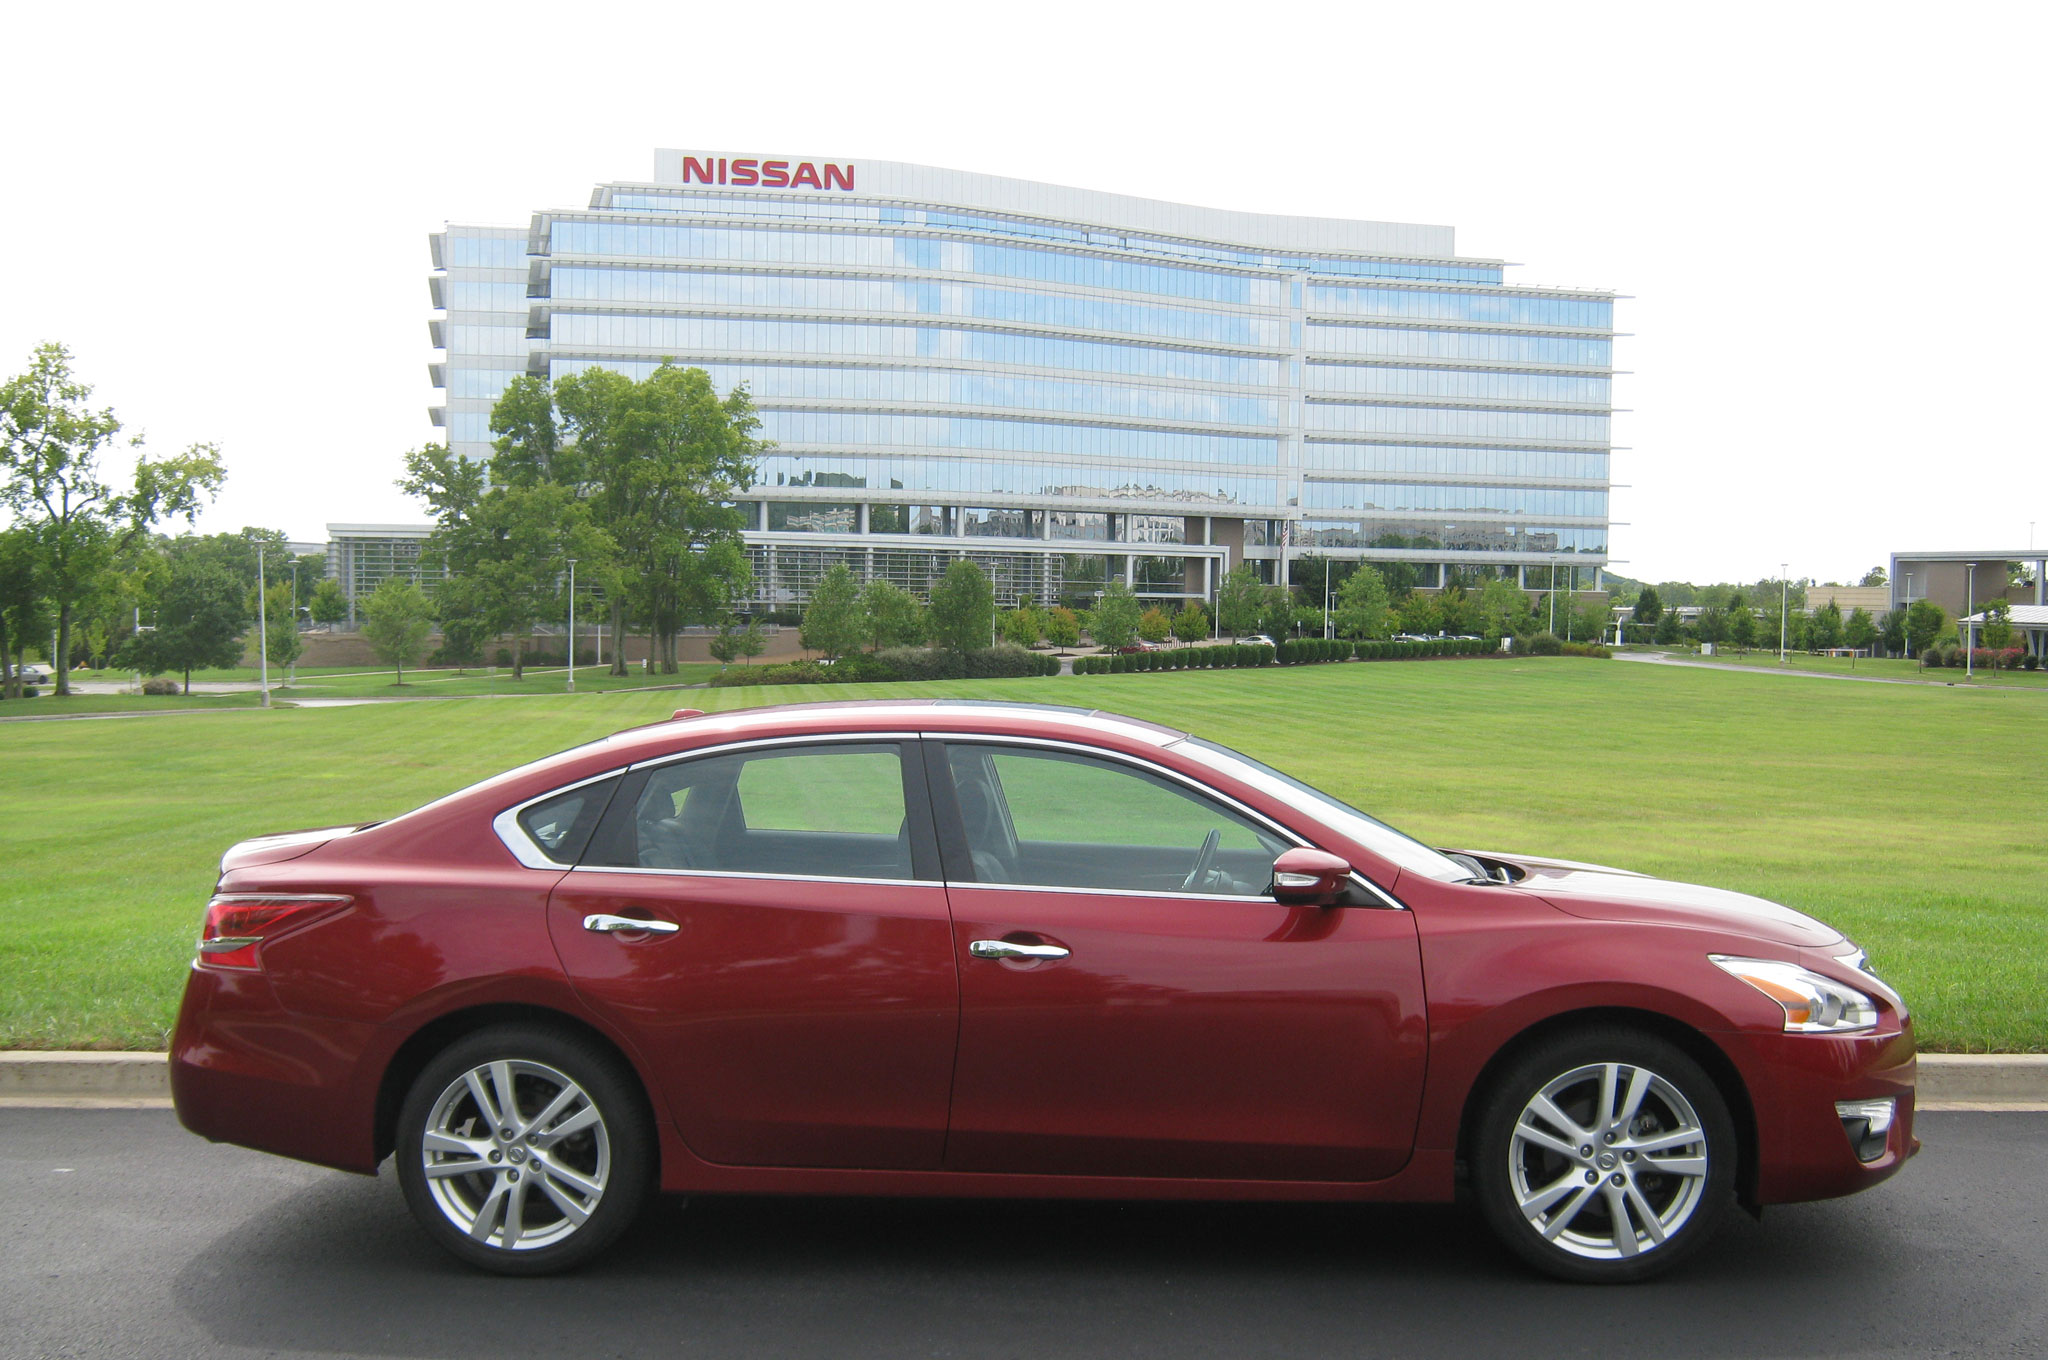 2013 Nissan Altima 3 5 SL Right Side View 21